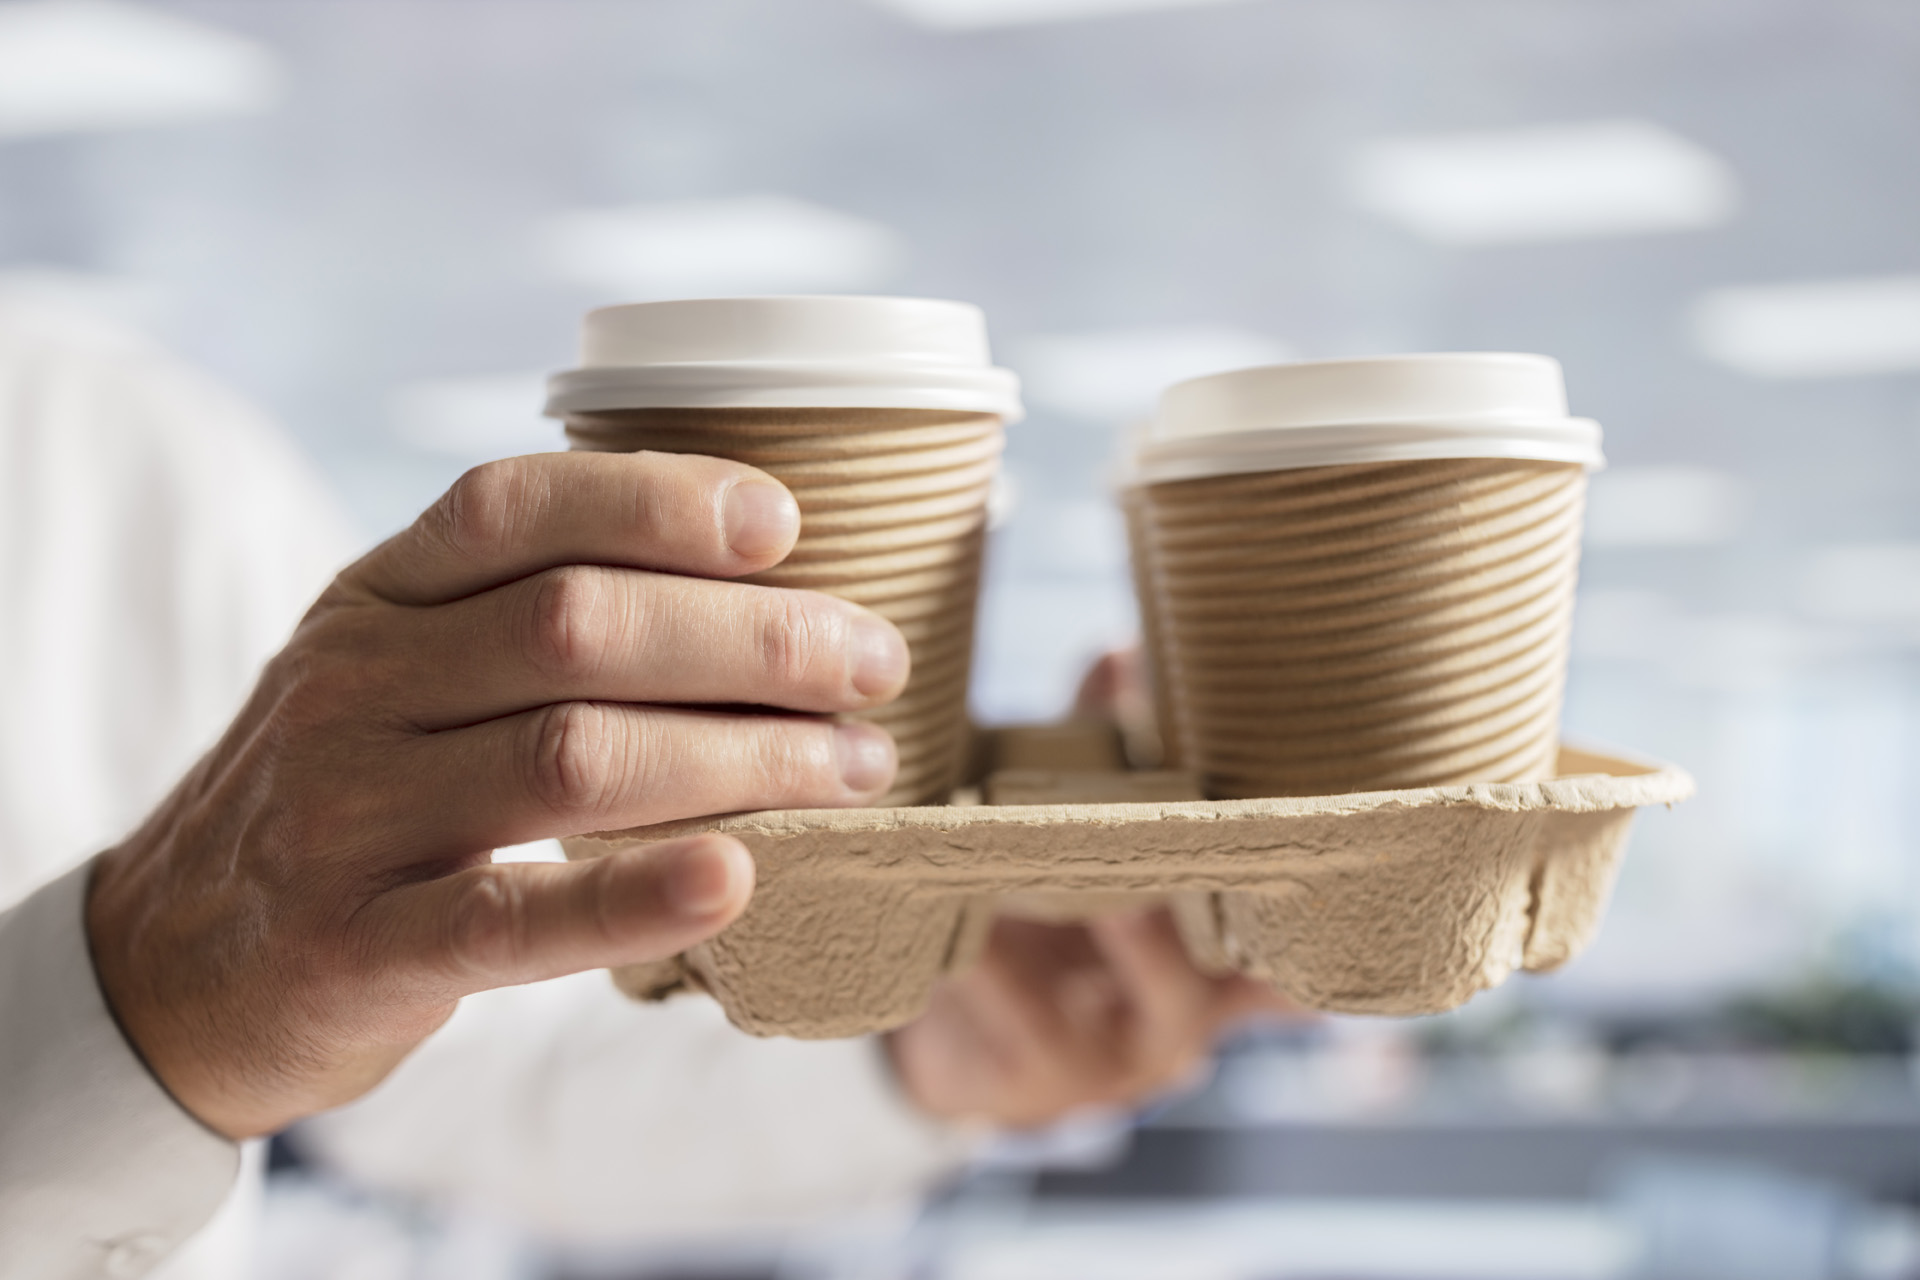 Businessman carrying coffee take out disposable cups in office f